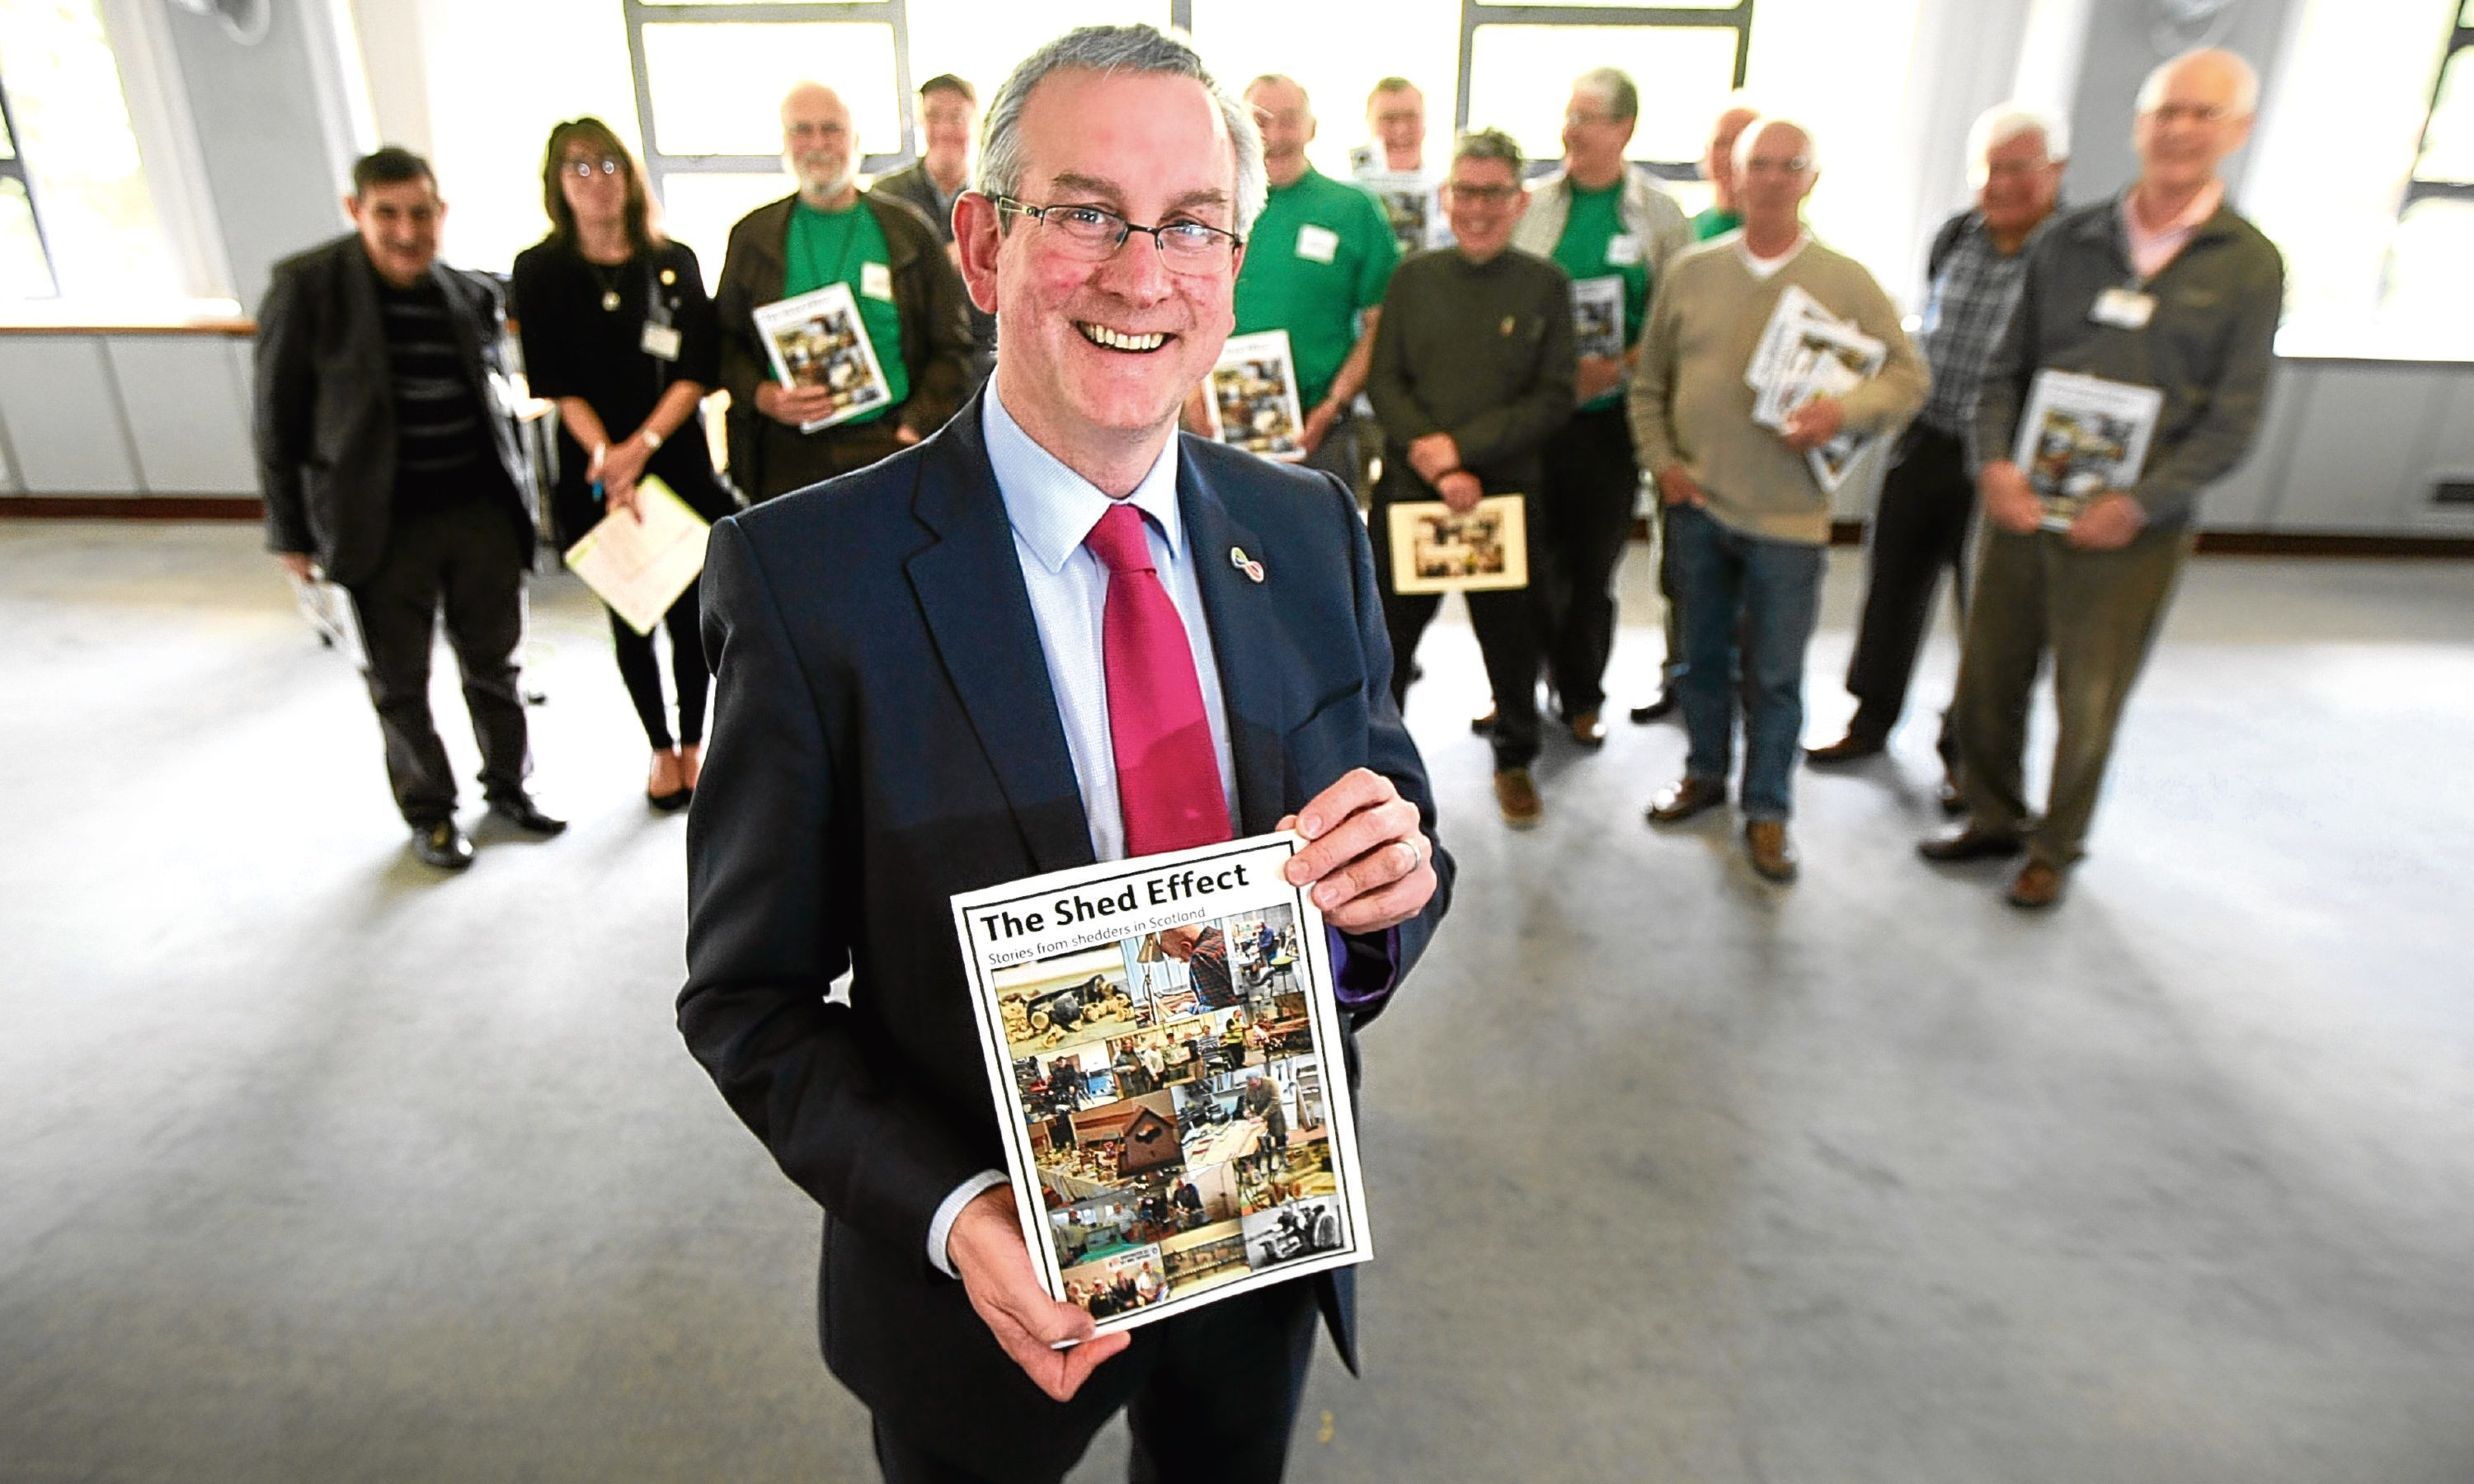 Keith Robson of Age Scotland with Men's Shed group members